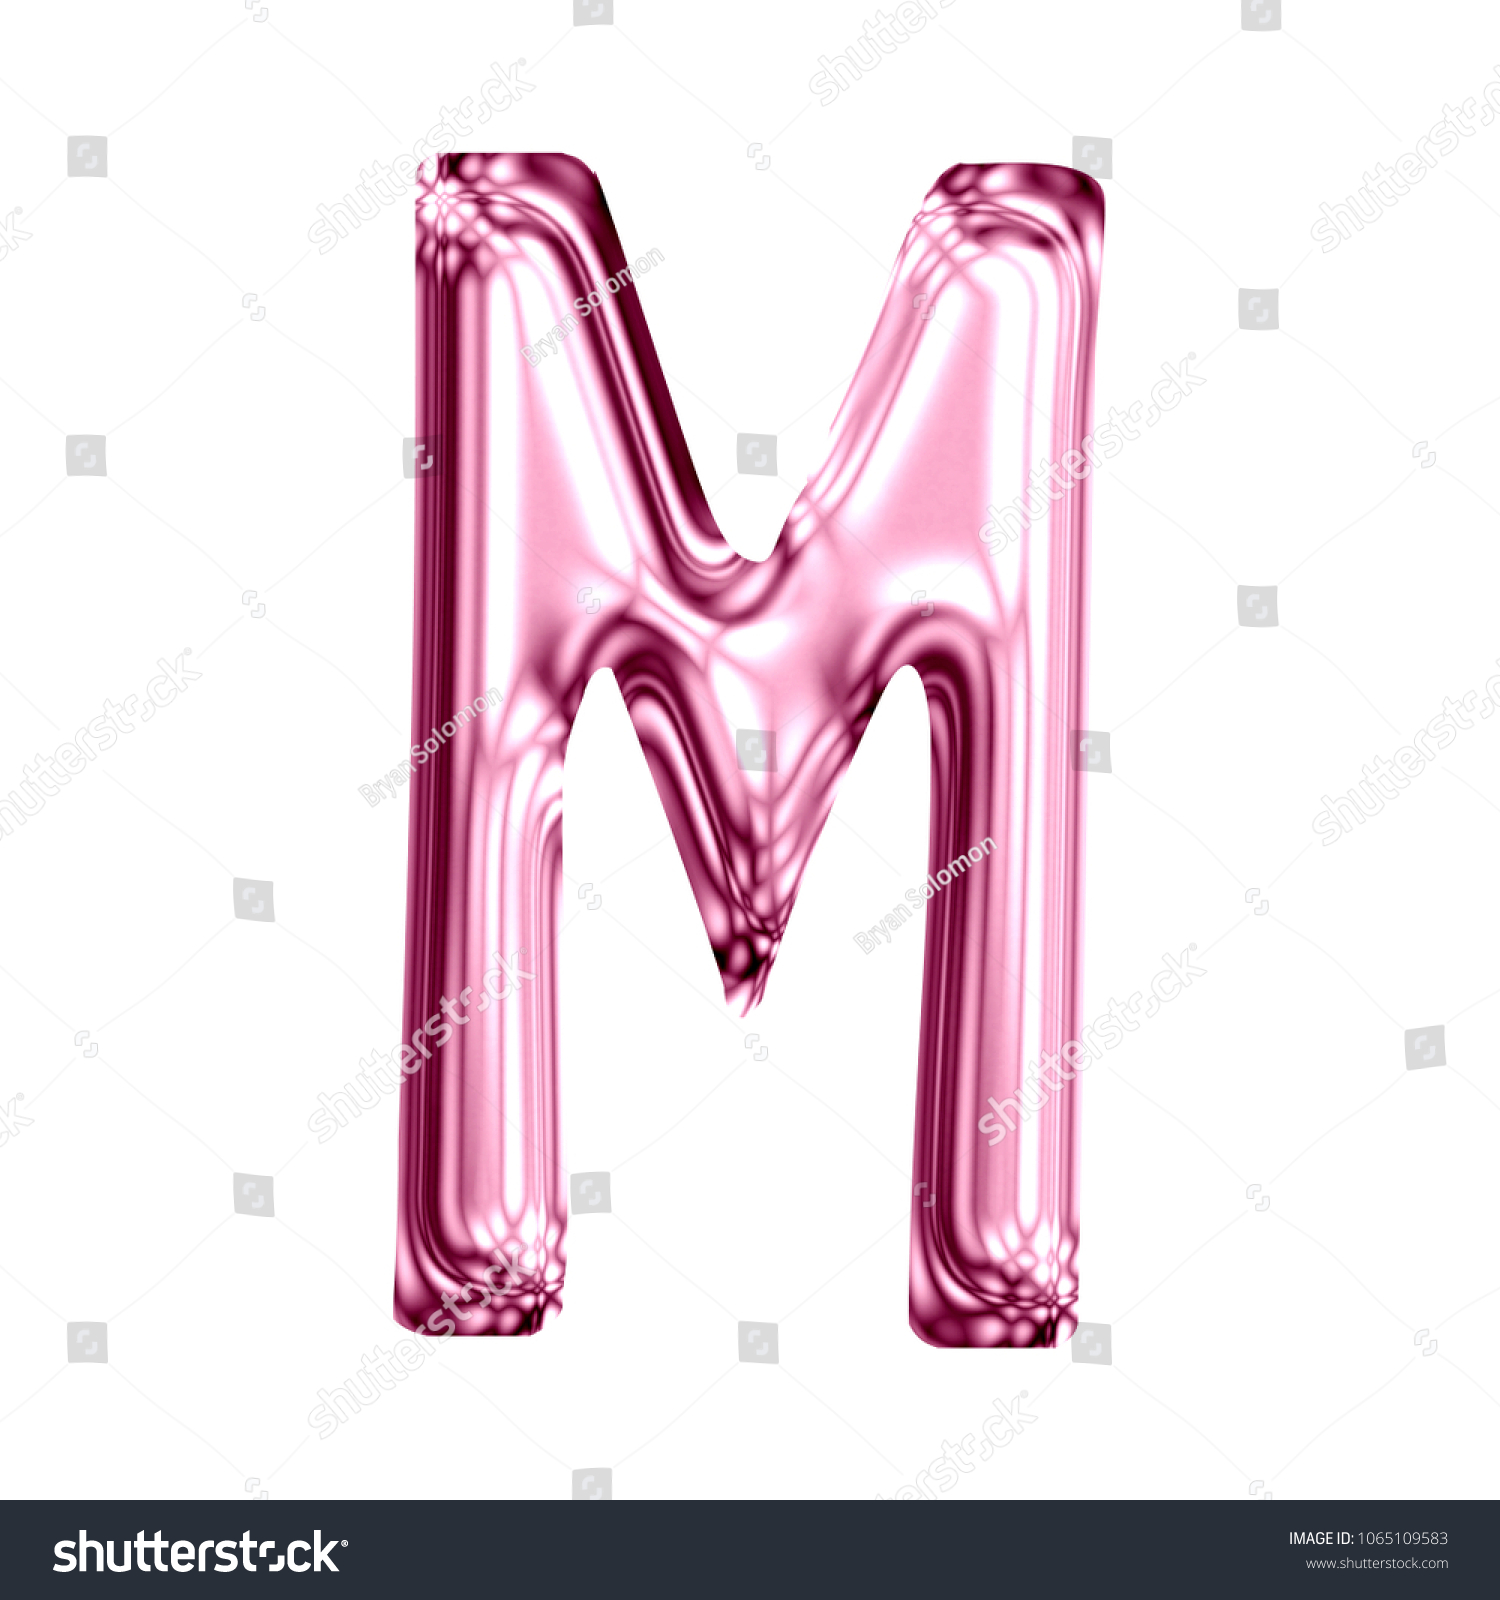 Royalty Free Stock Illustration of Shiny Pink Glass Letter M ...